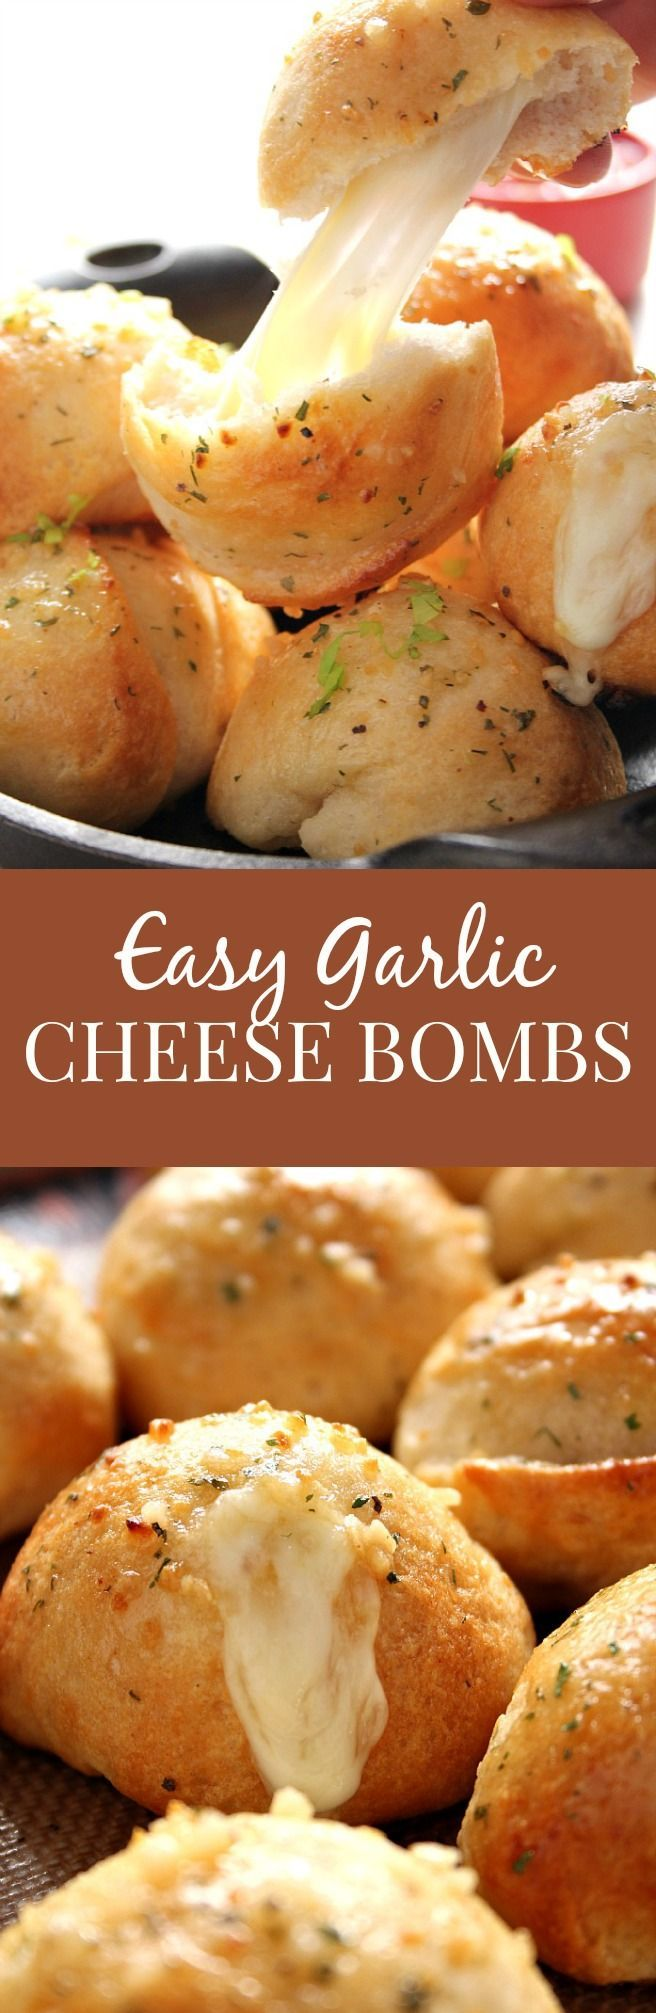 Biscuit bombs filled with gooey mozzarella, brushed with garlic Ranch butter and baked into perfection. Easy, fast and absolutely addicting!